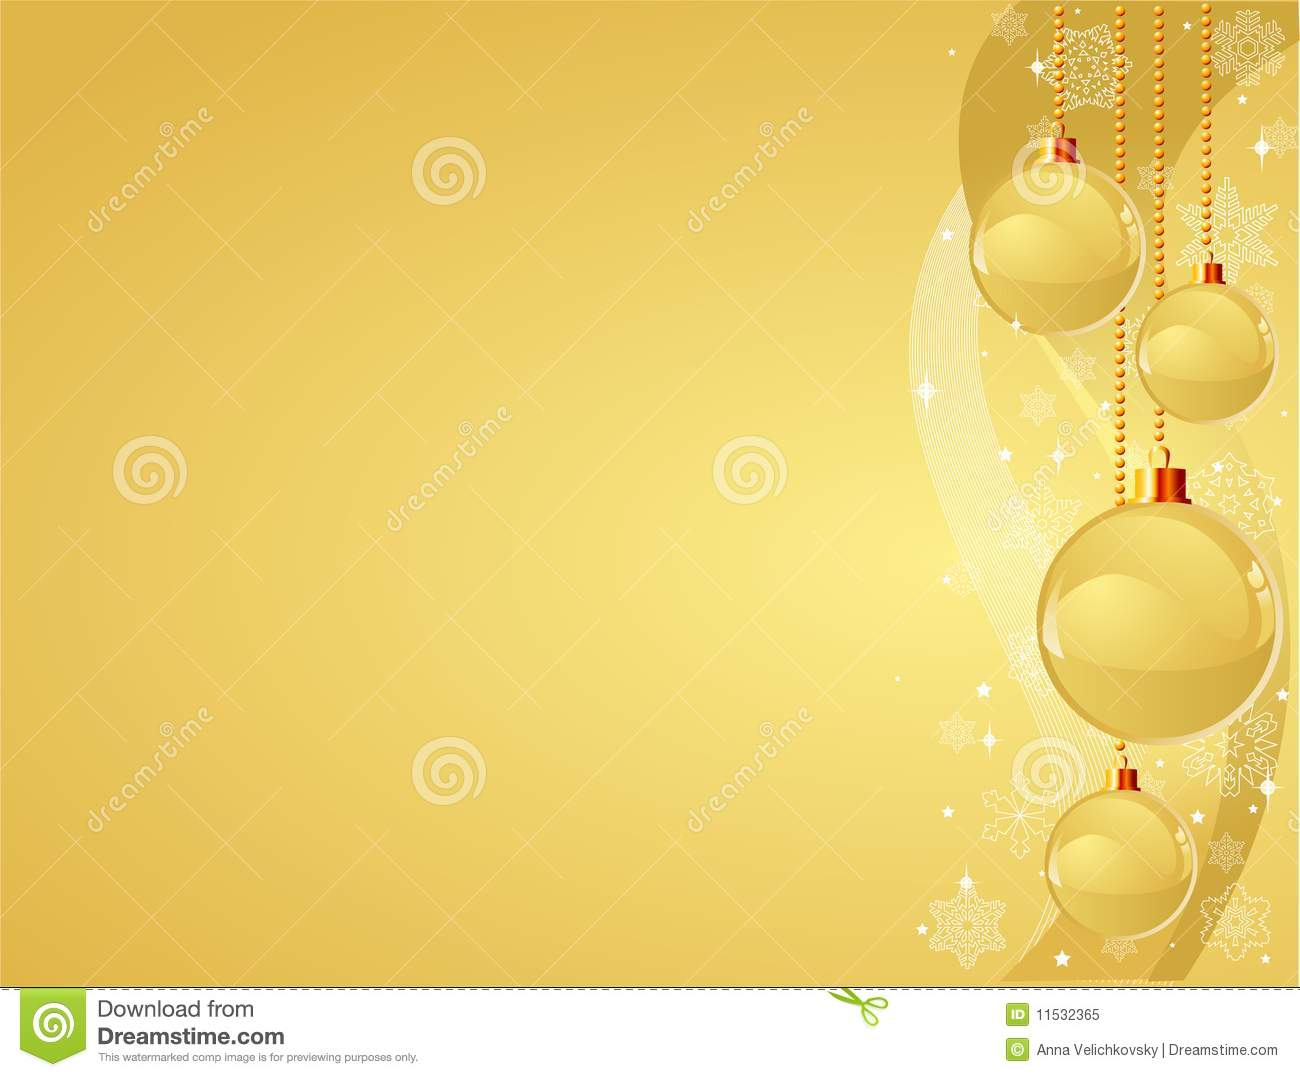 gold christmas background stock vector. illustration of abstract